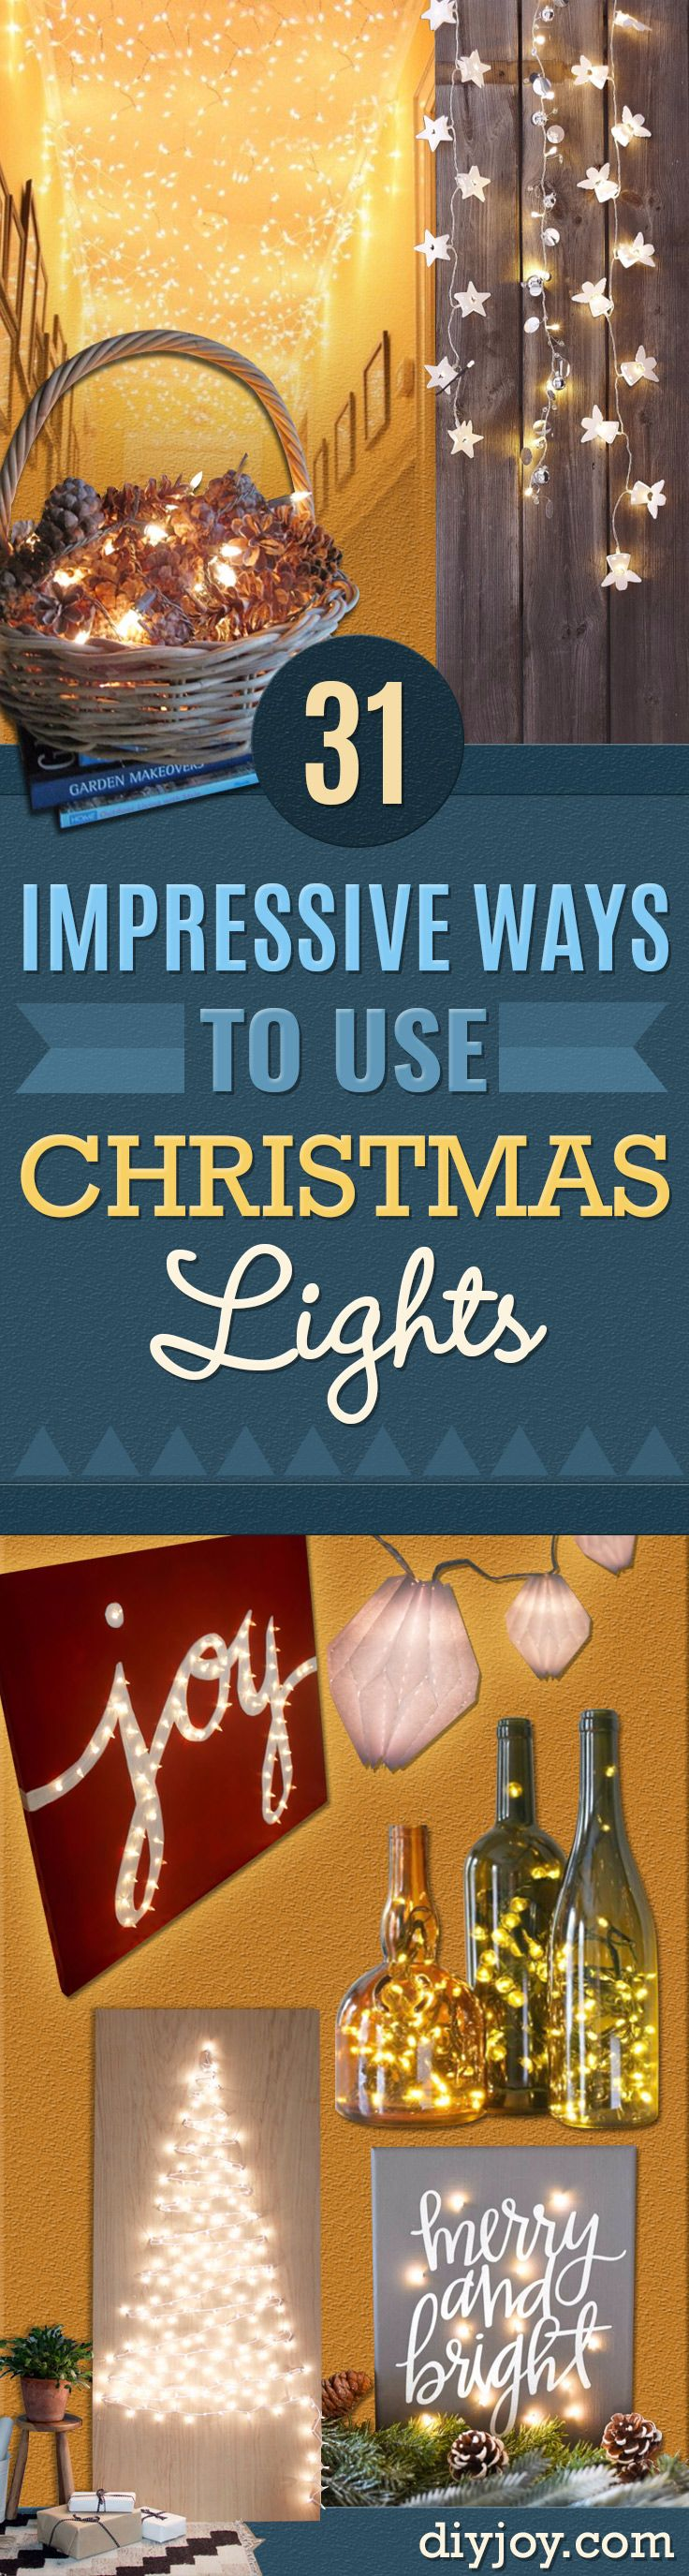 Bedroom christmas lights quotes - 31 Impressive Ways To Use Your Christmas Lights